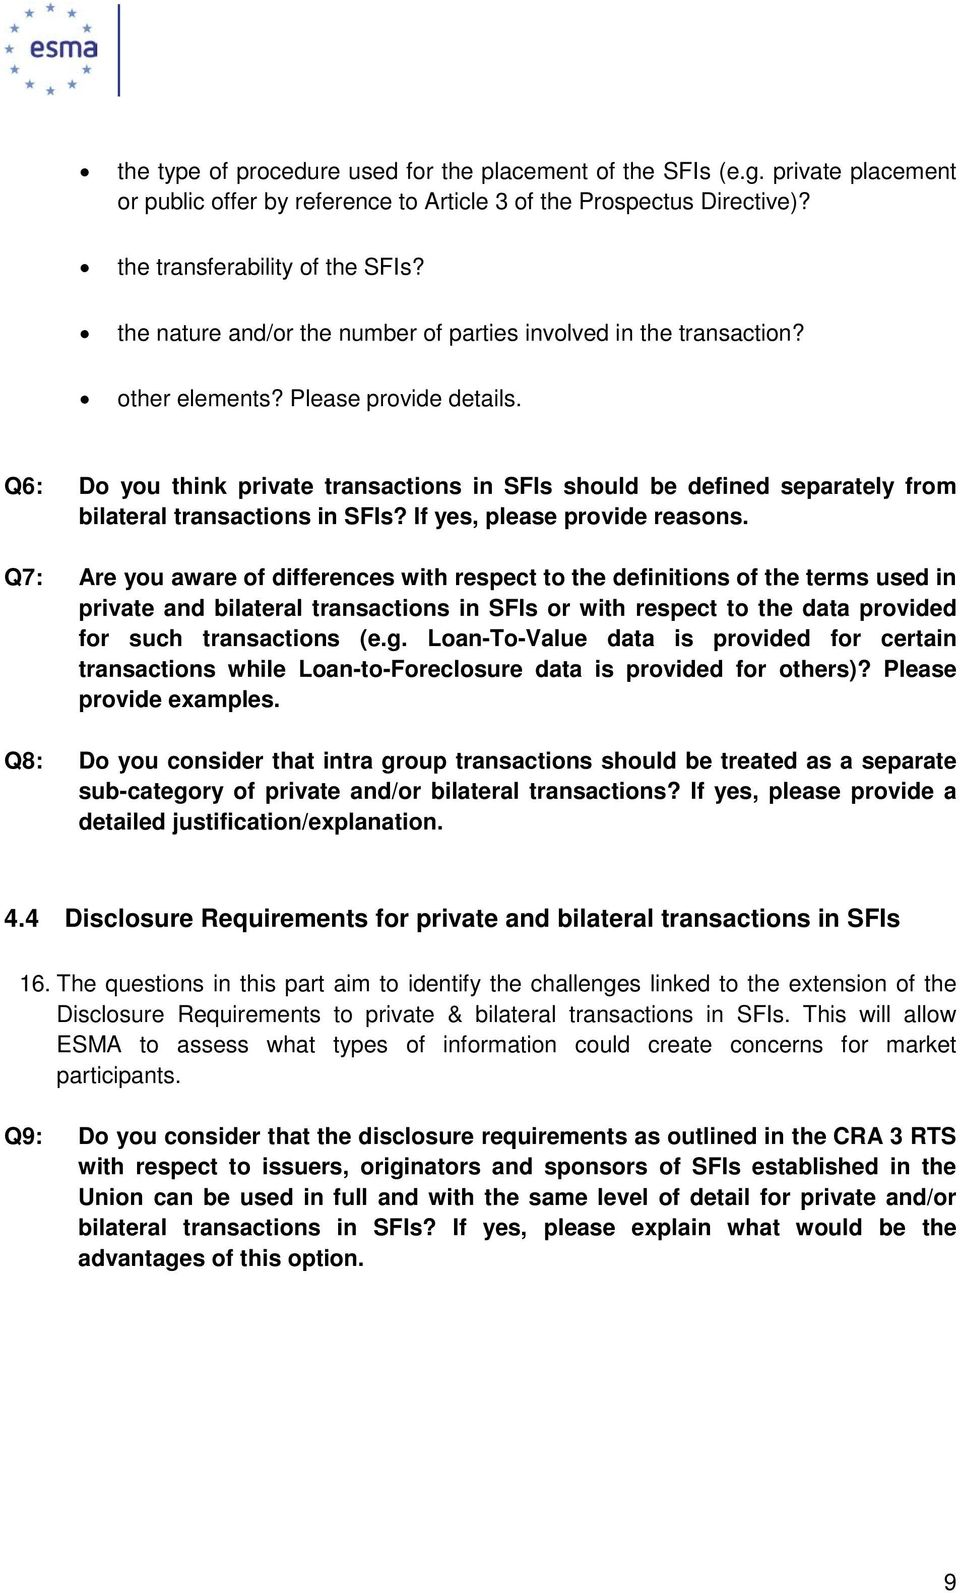 Q6: Do you think private transactions in SFIs should be defined separately from bilateral transactions in SFIs? If yes, please provide reasons.